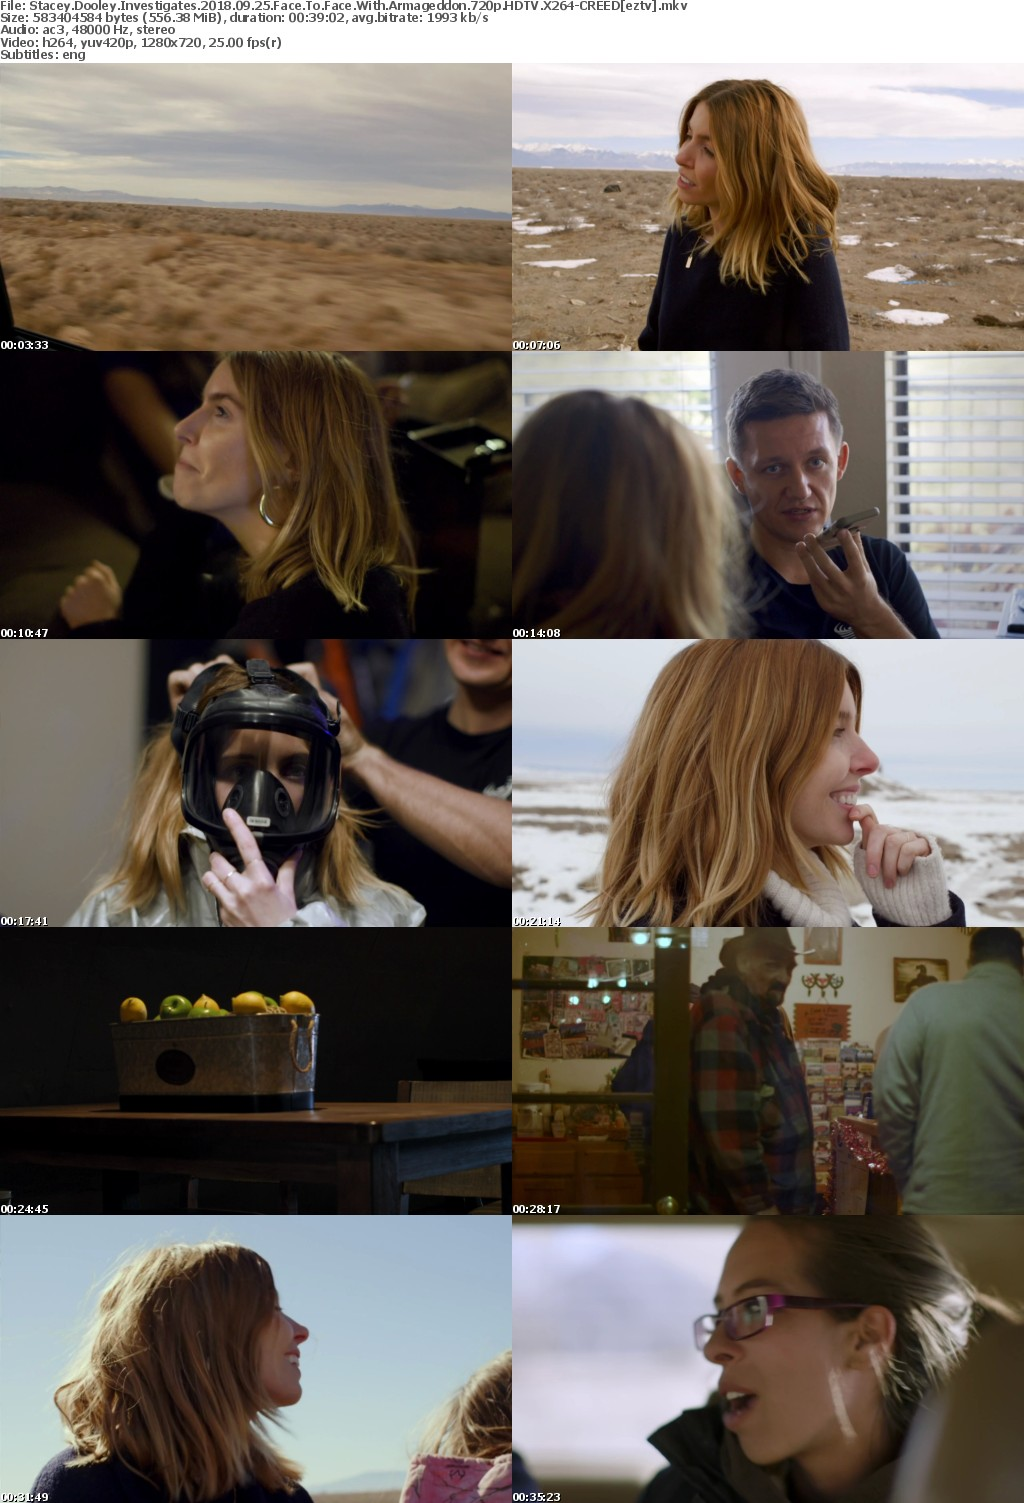 Stacey Dooley Investigates 2018 09 25 Face To Face With Armageddon 720p HDTV X264-CREED